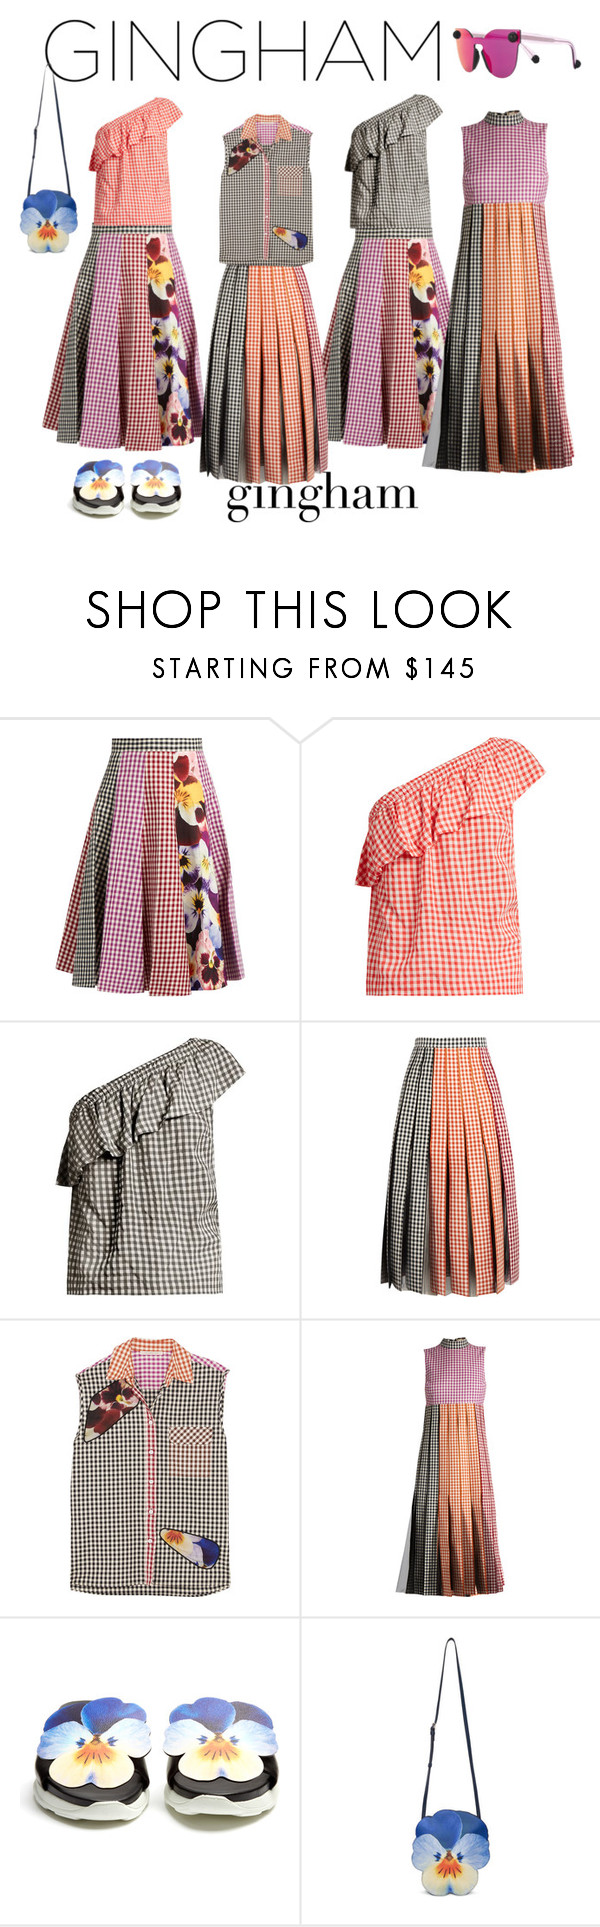 """""""Gingham Sets"""" by geonell ❤ liked on Polyvore featuring Christopher Kane, Velvet by Graham & Spencer, Spring, SpringStyle, gingham, springflorals and Spring2017"""